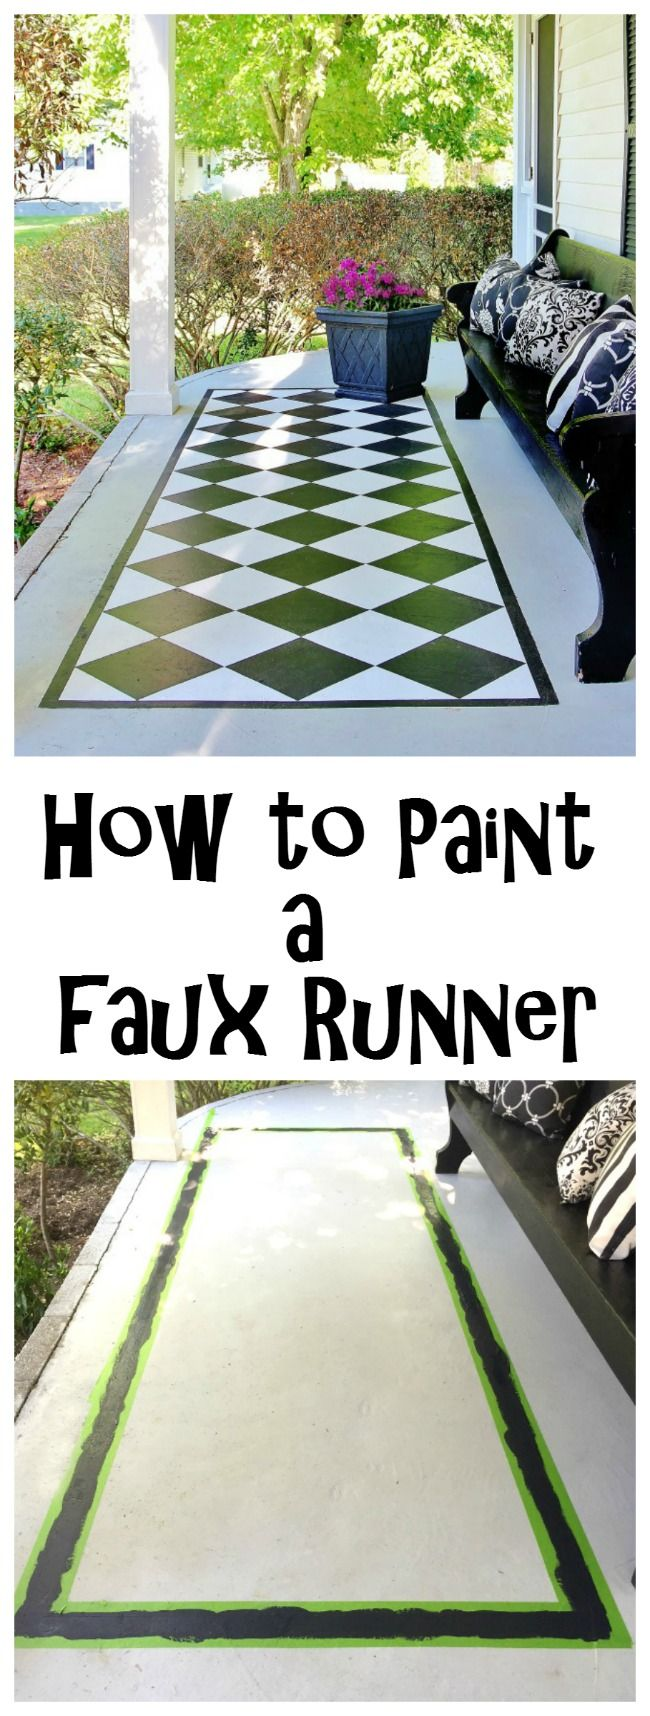 How to paint a faux runner